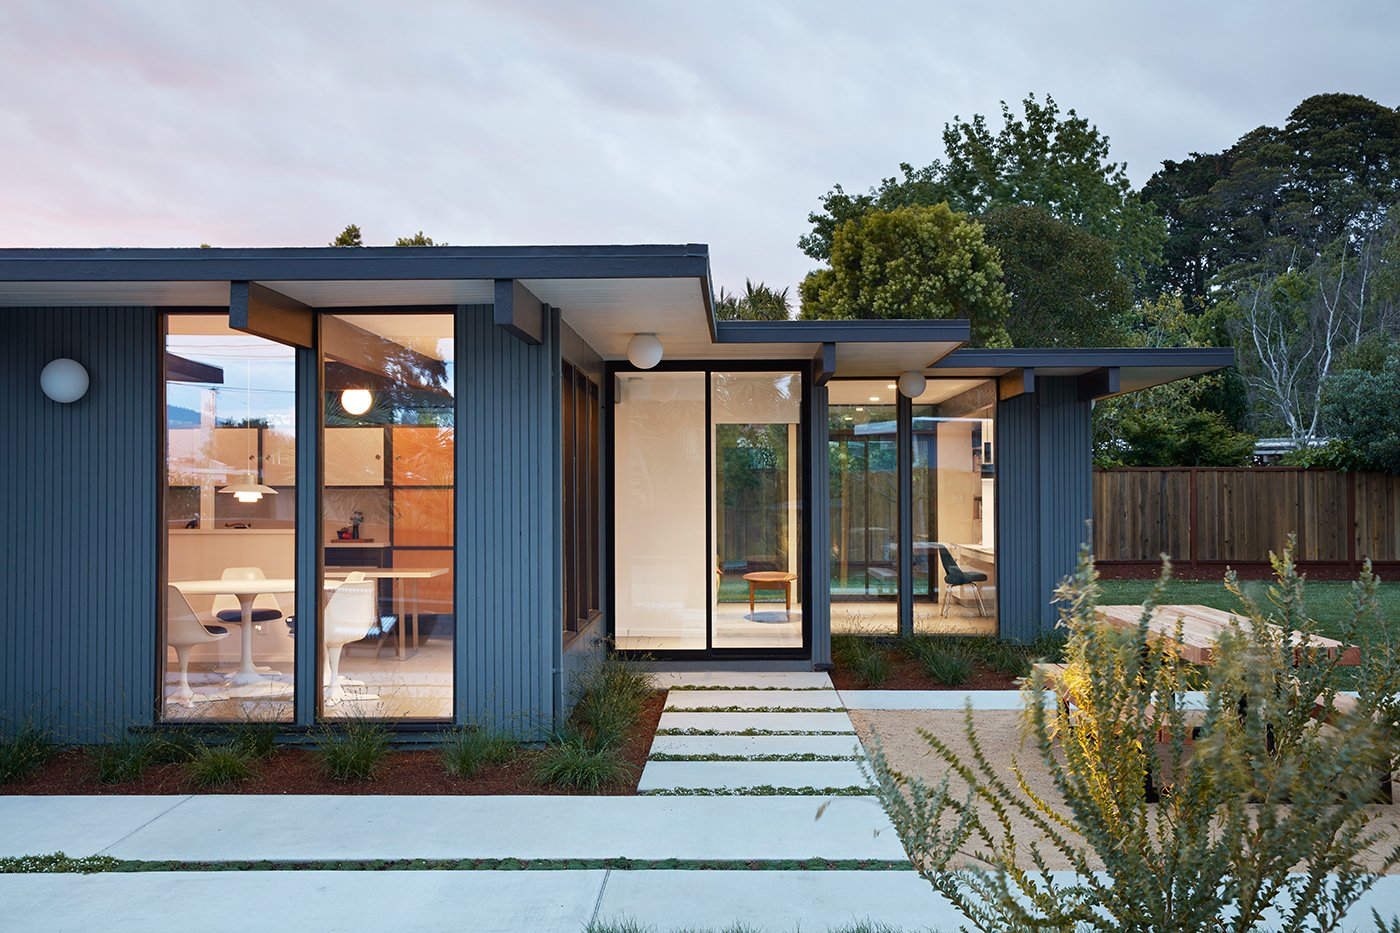 Eichler house in San Mateo Highlands - Klopf architecture - exterior back